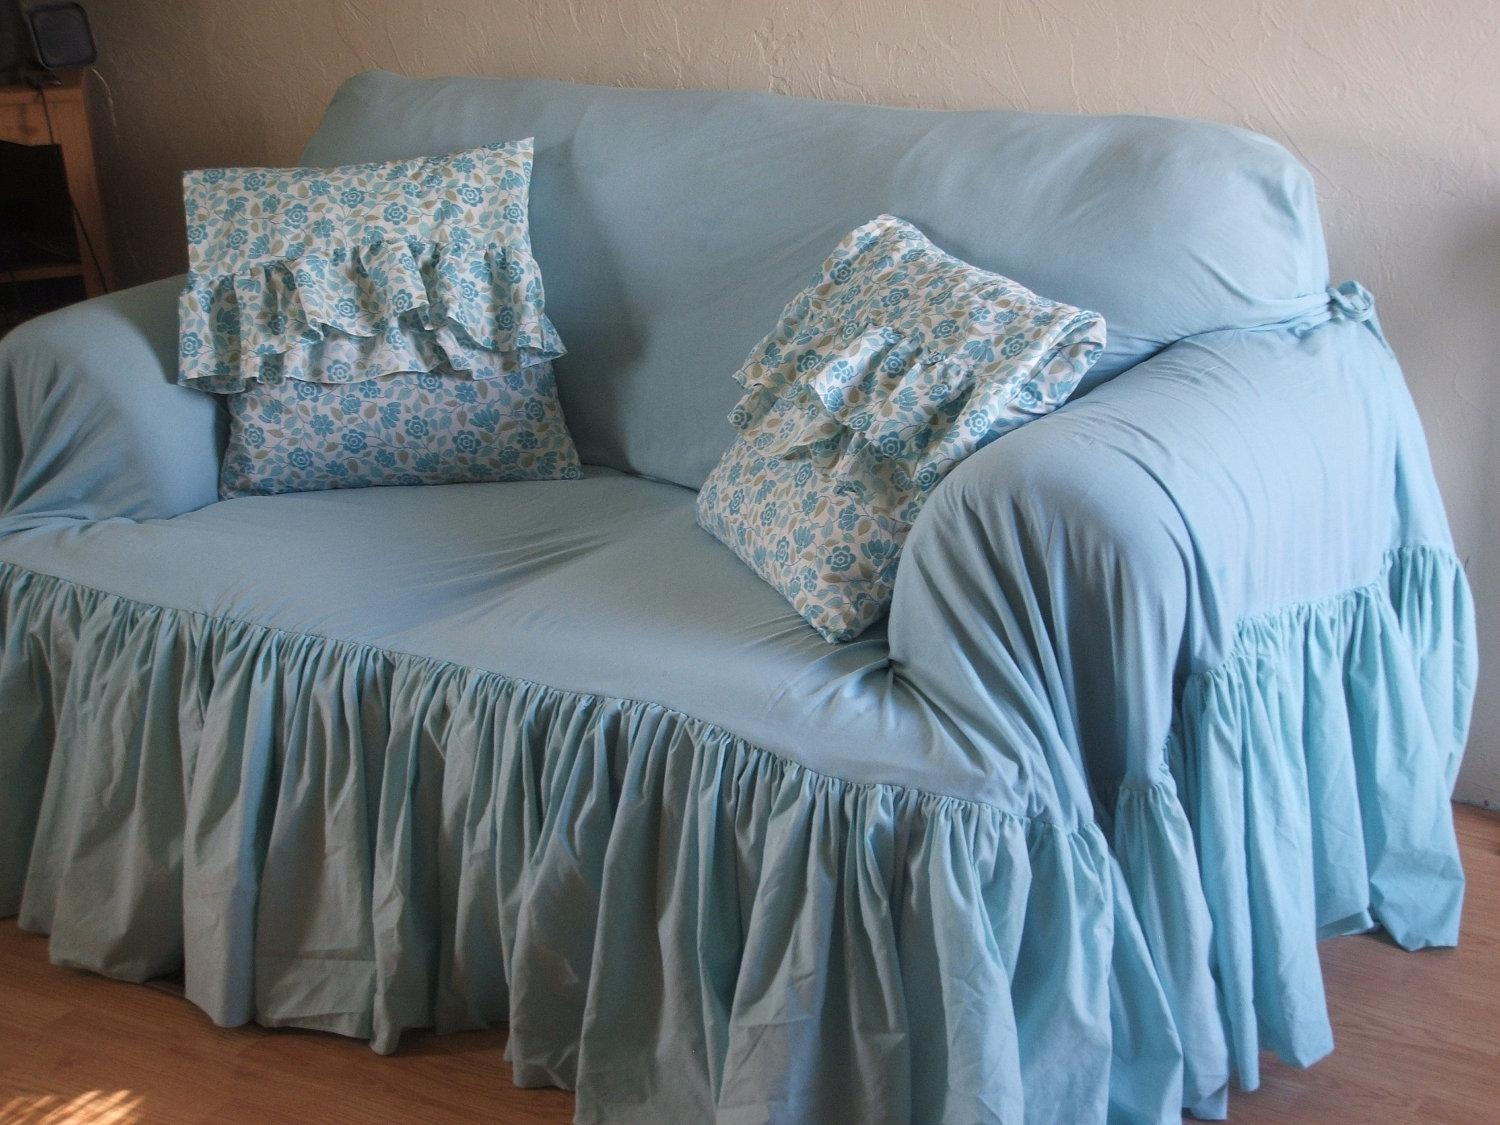 Couch Shabby Chic 21 Ideas Of Shabby Chic Sectional Sofas Couches Sofa Ideas